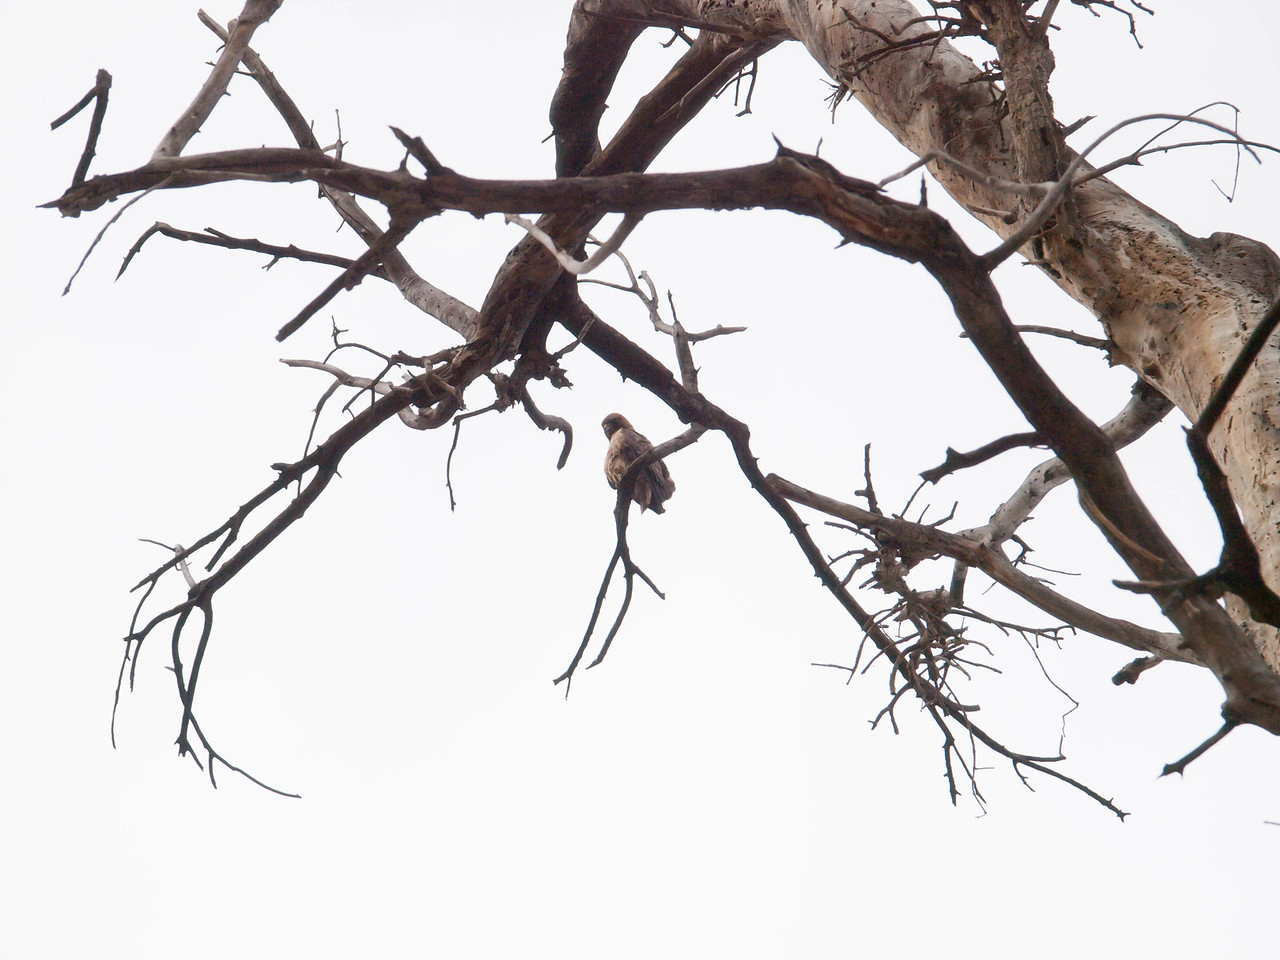 Normally a hawk would fly away if we walked underneath his branch, but maybe this guy's wings were wet.  Also, he seems to be looking at us with contempt.  I imagine we didn't seem threatening.